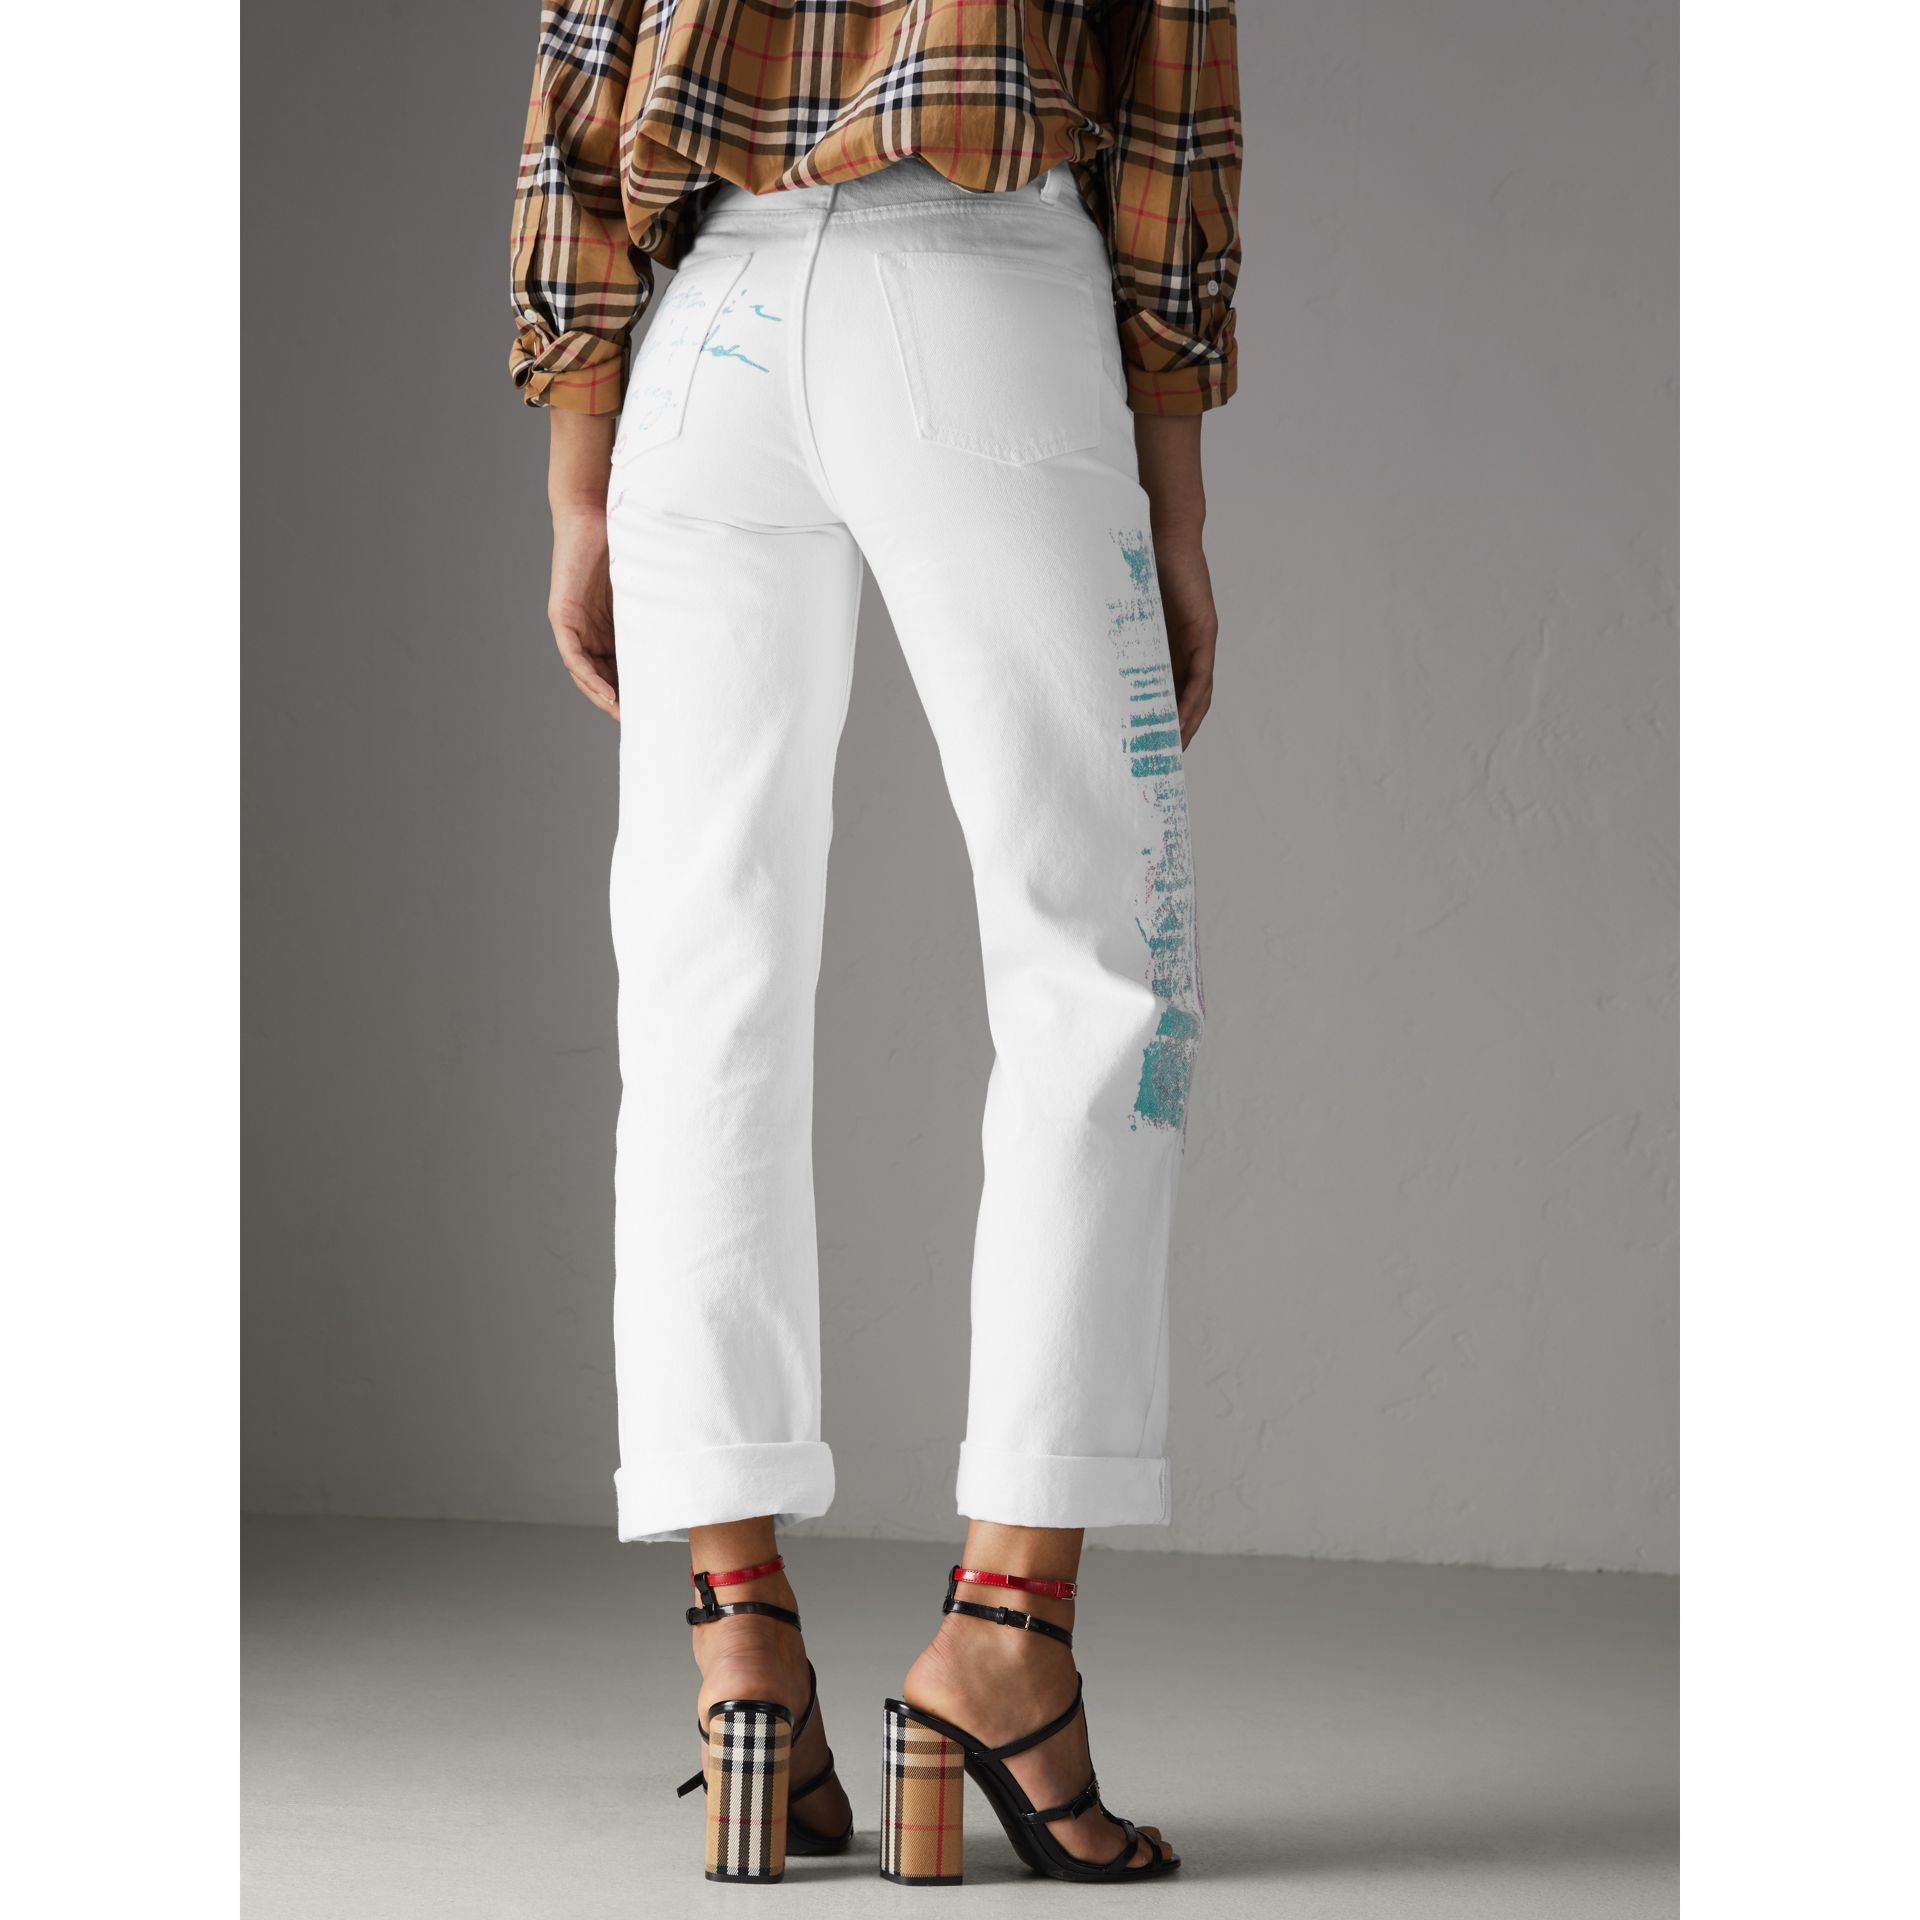 Straight Fit Postcard Print Japanese Denim Jeans in Natural White - Women | Burberry United States - gallery image 2